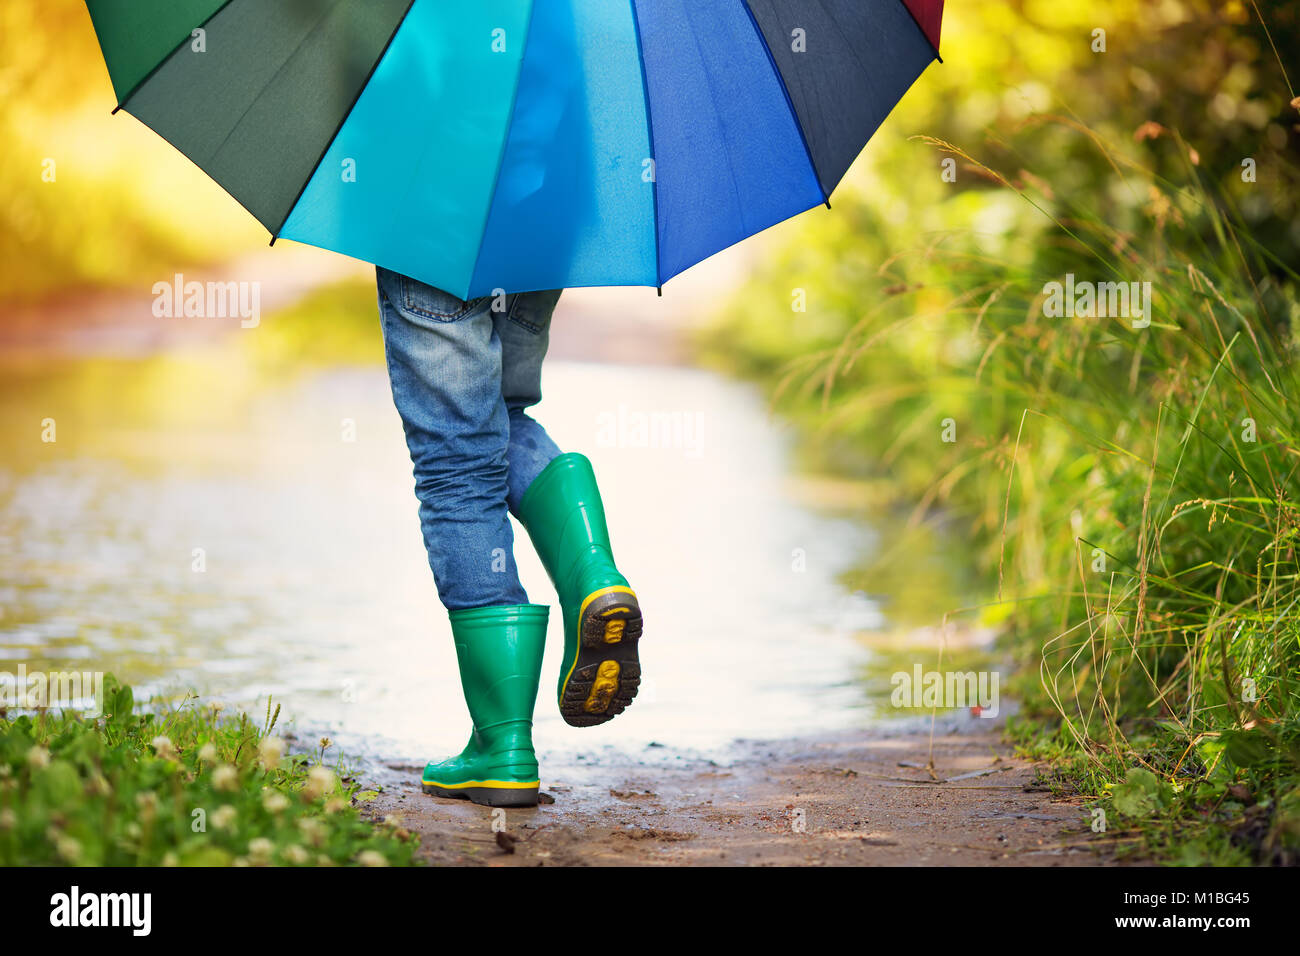 Child walking in wellies in puddle on rainy weather Stock Photo